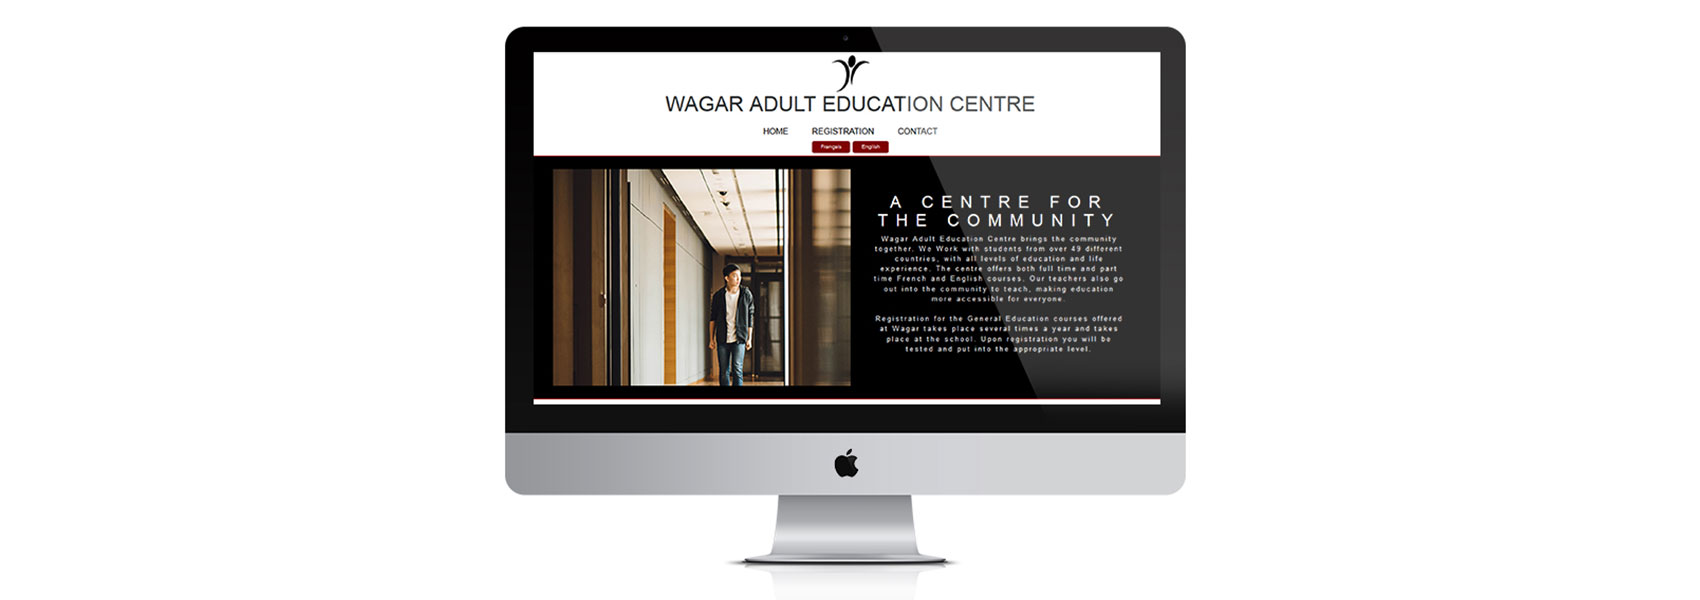 Landing page of Wagar Adult Education Centre